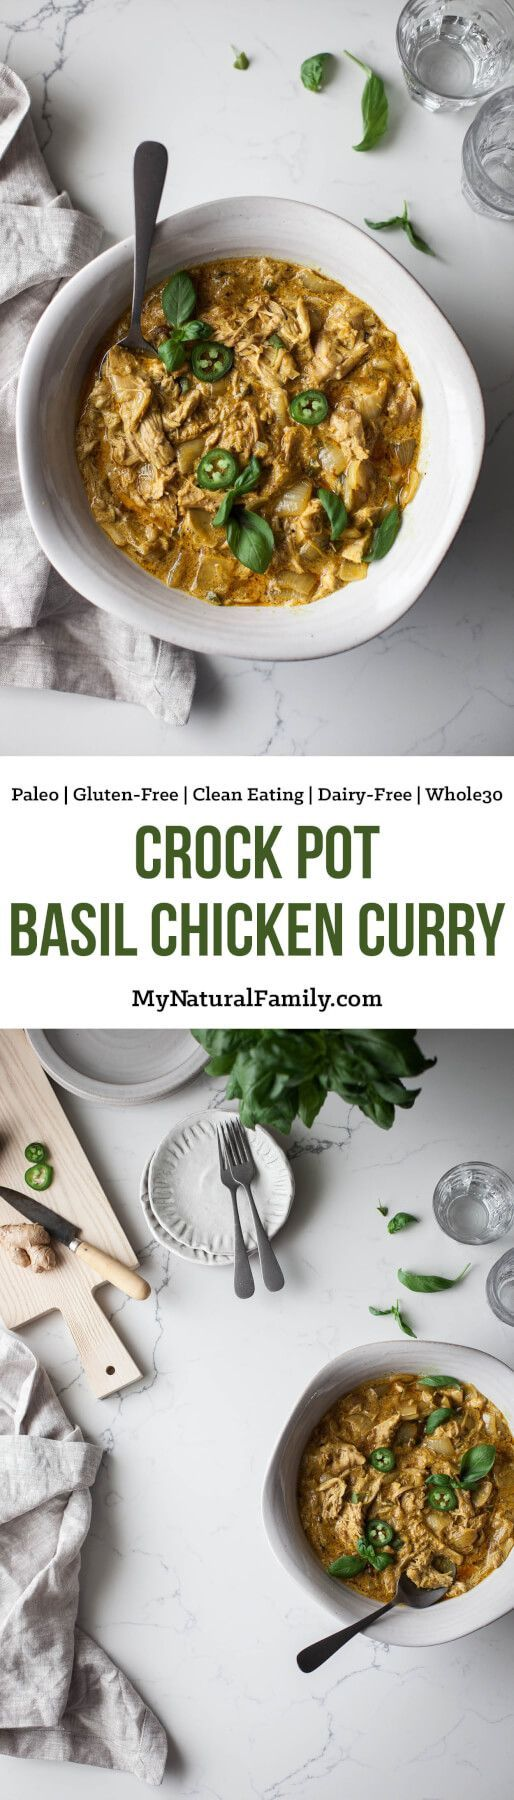 This coconut curry chicken recipe gets so tender and flavorful in the crock pot. I crave it all the time! {Paleo, Gluten-Free, Clean Eating, Dairy-Free, Whole30}